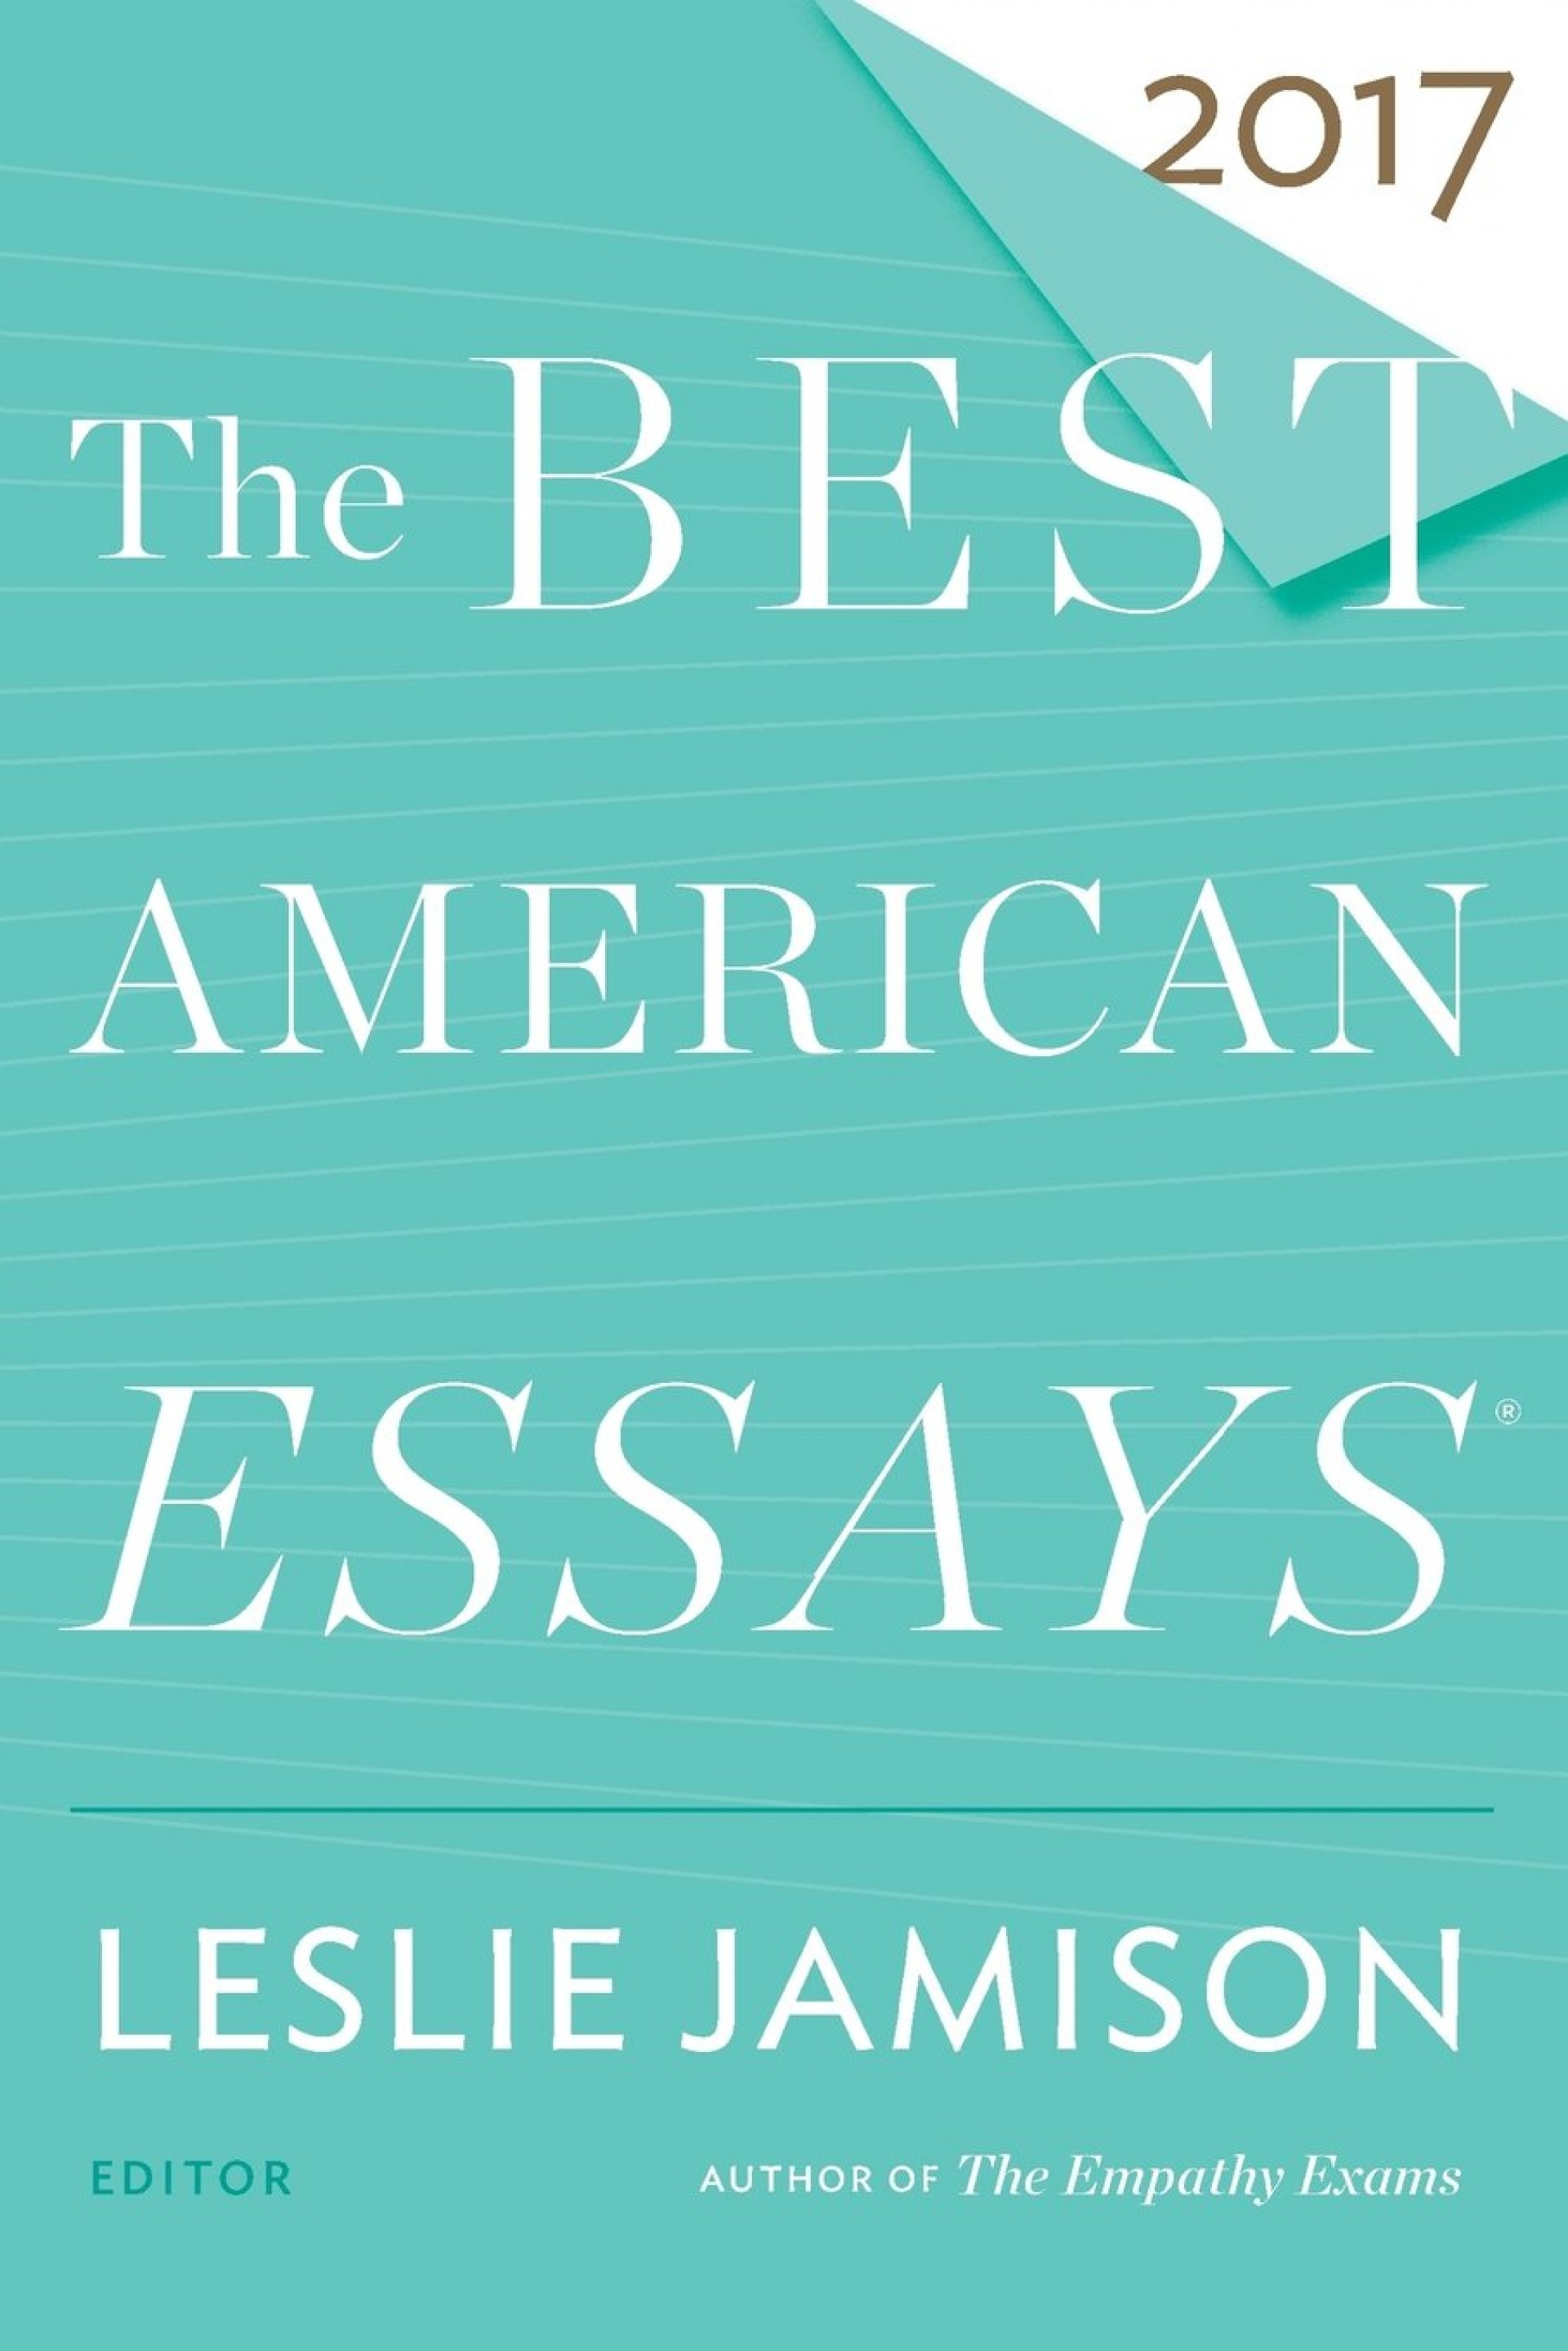 001 61tzl Nruvl Essay Example The Best American Wonderful Essays 2018 Pdf 2017 Table Of Contents 2015 Free 1920